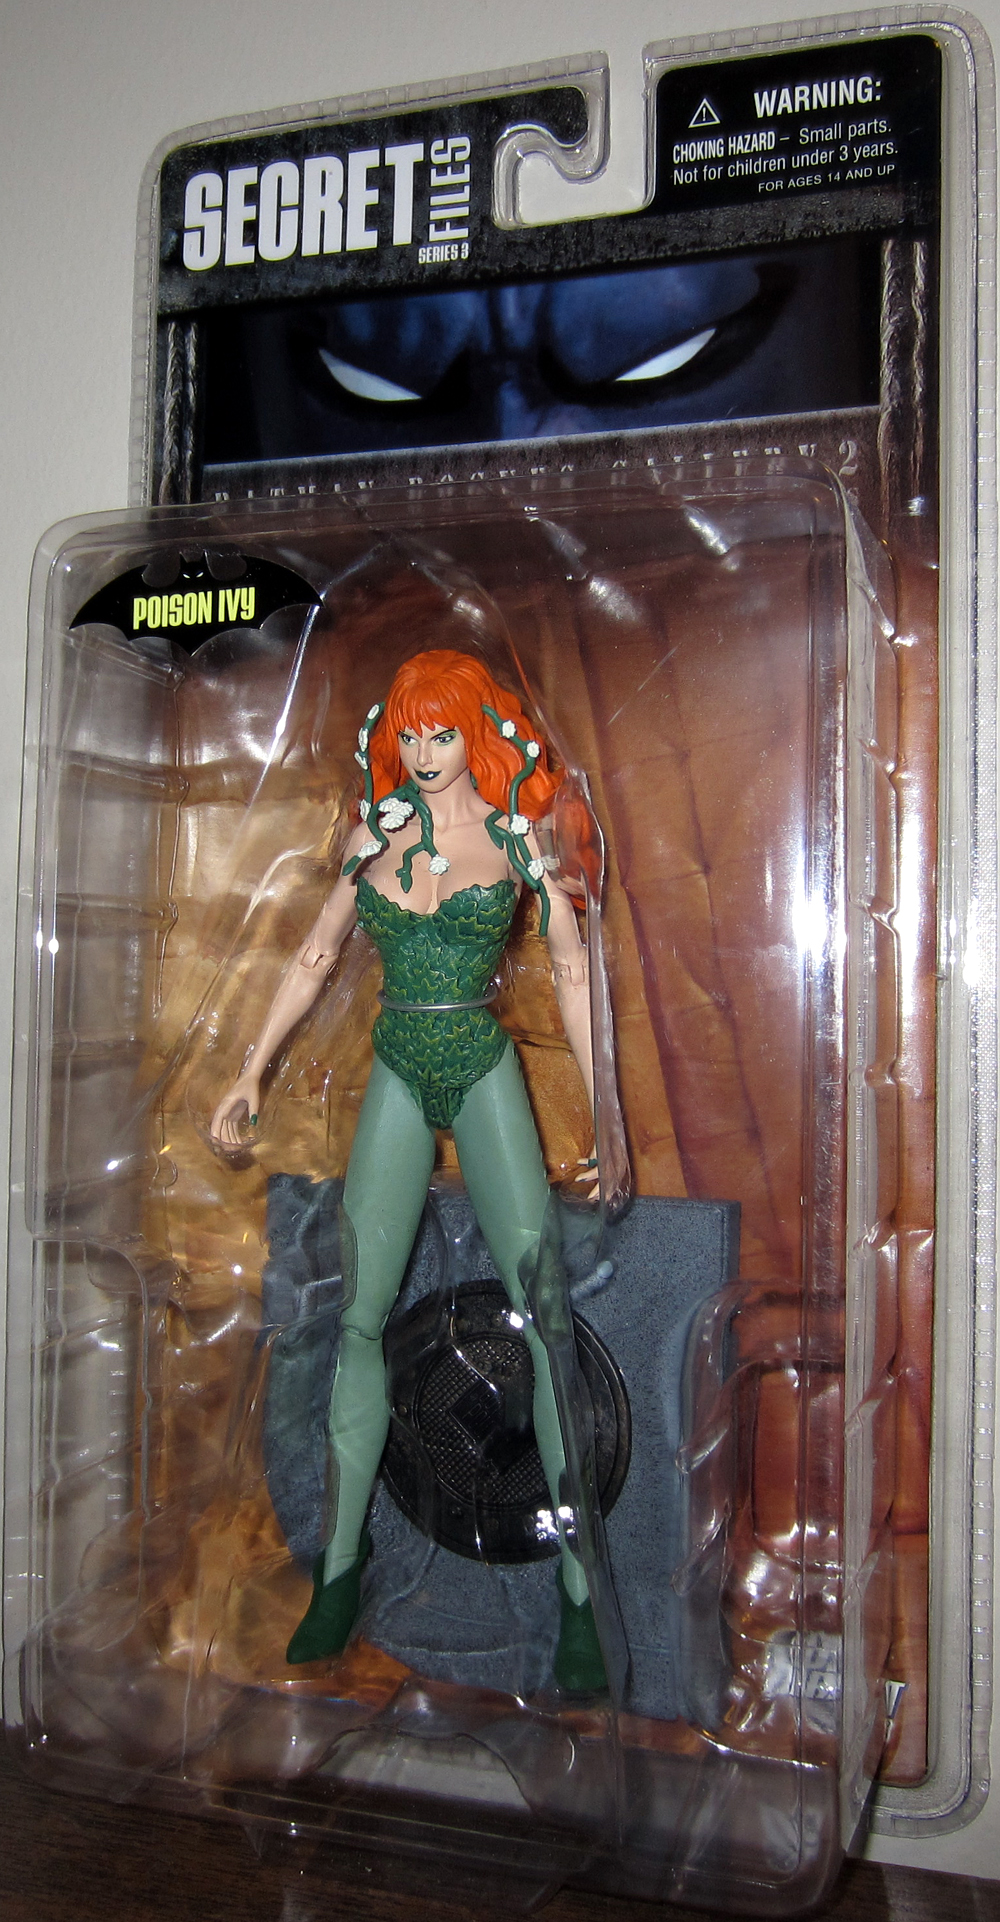 Poison Ivy (Batman Rogues Gallery 2, Secret Files Series 3)